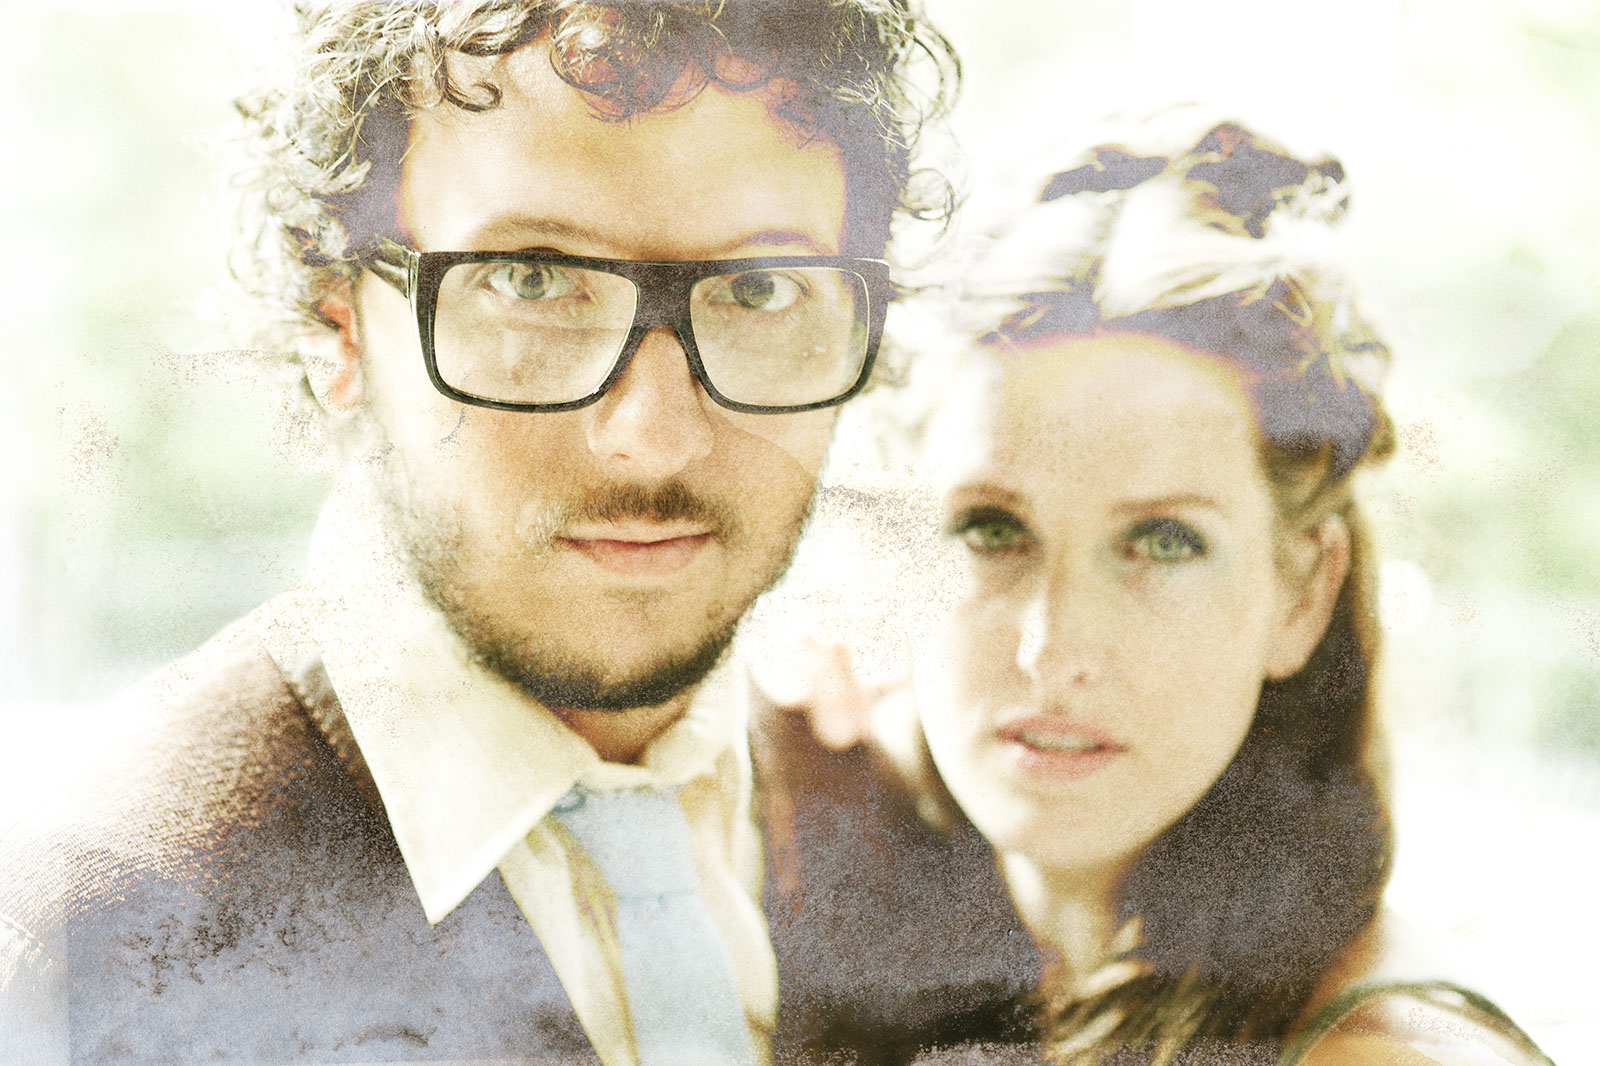 An image of Michael Gungor and his wife, Lisa, facing the camera